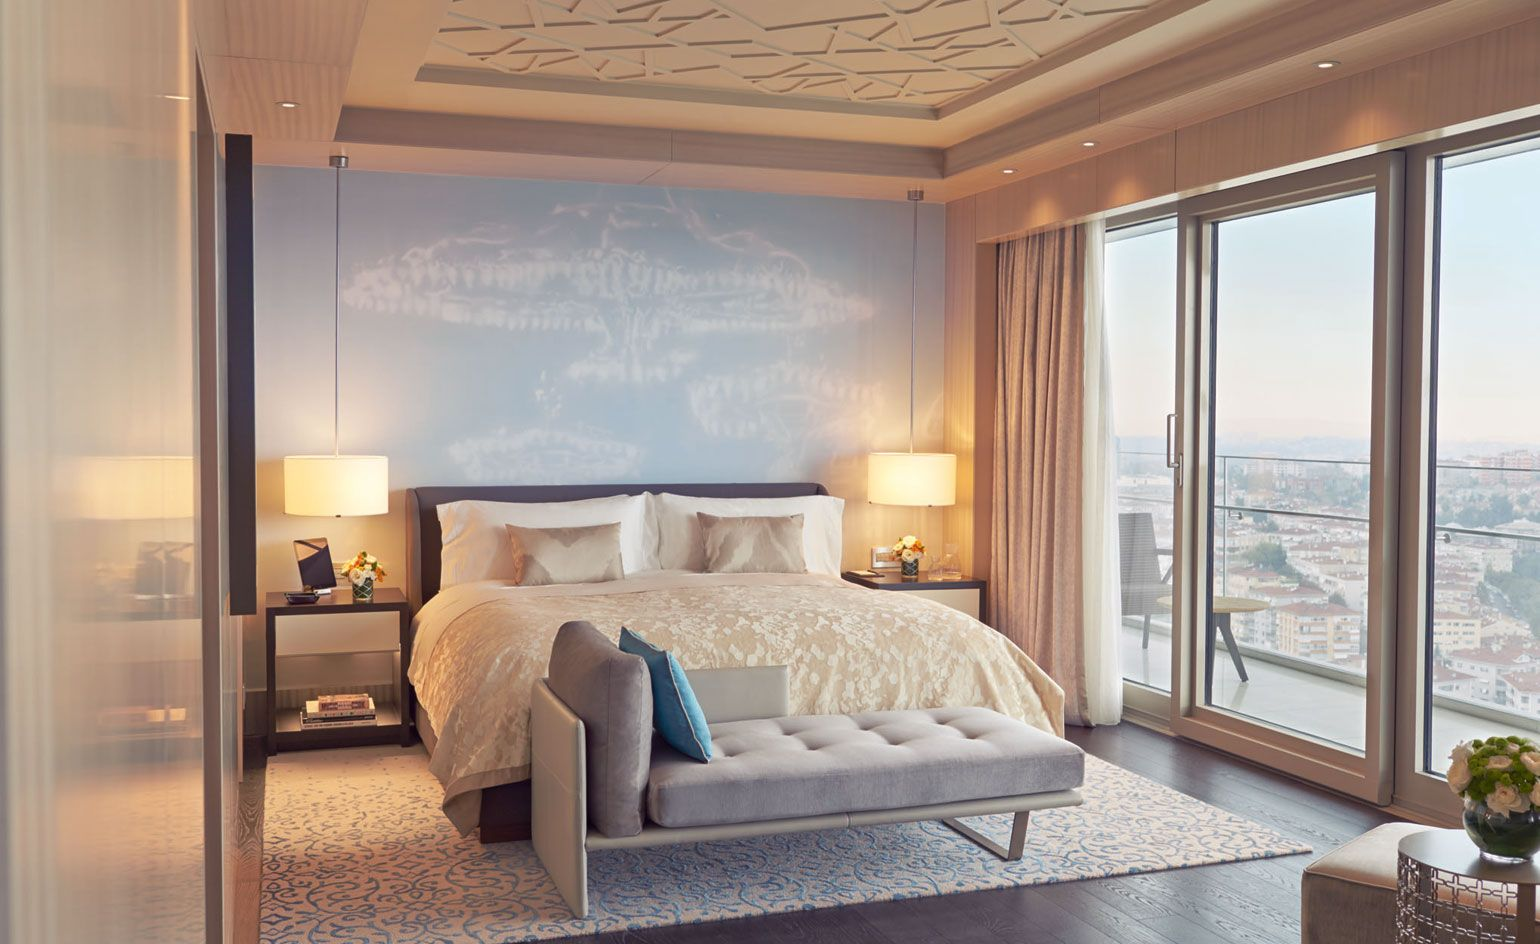 Raffles istanbul turkey best urban hotels 2015 the for Decor hotel istanbul